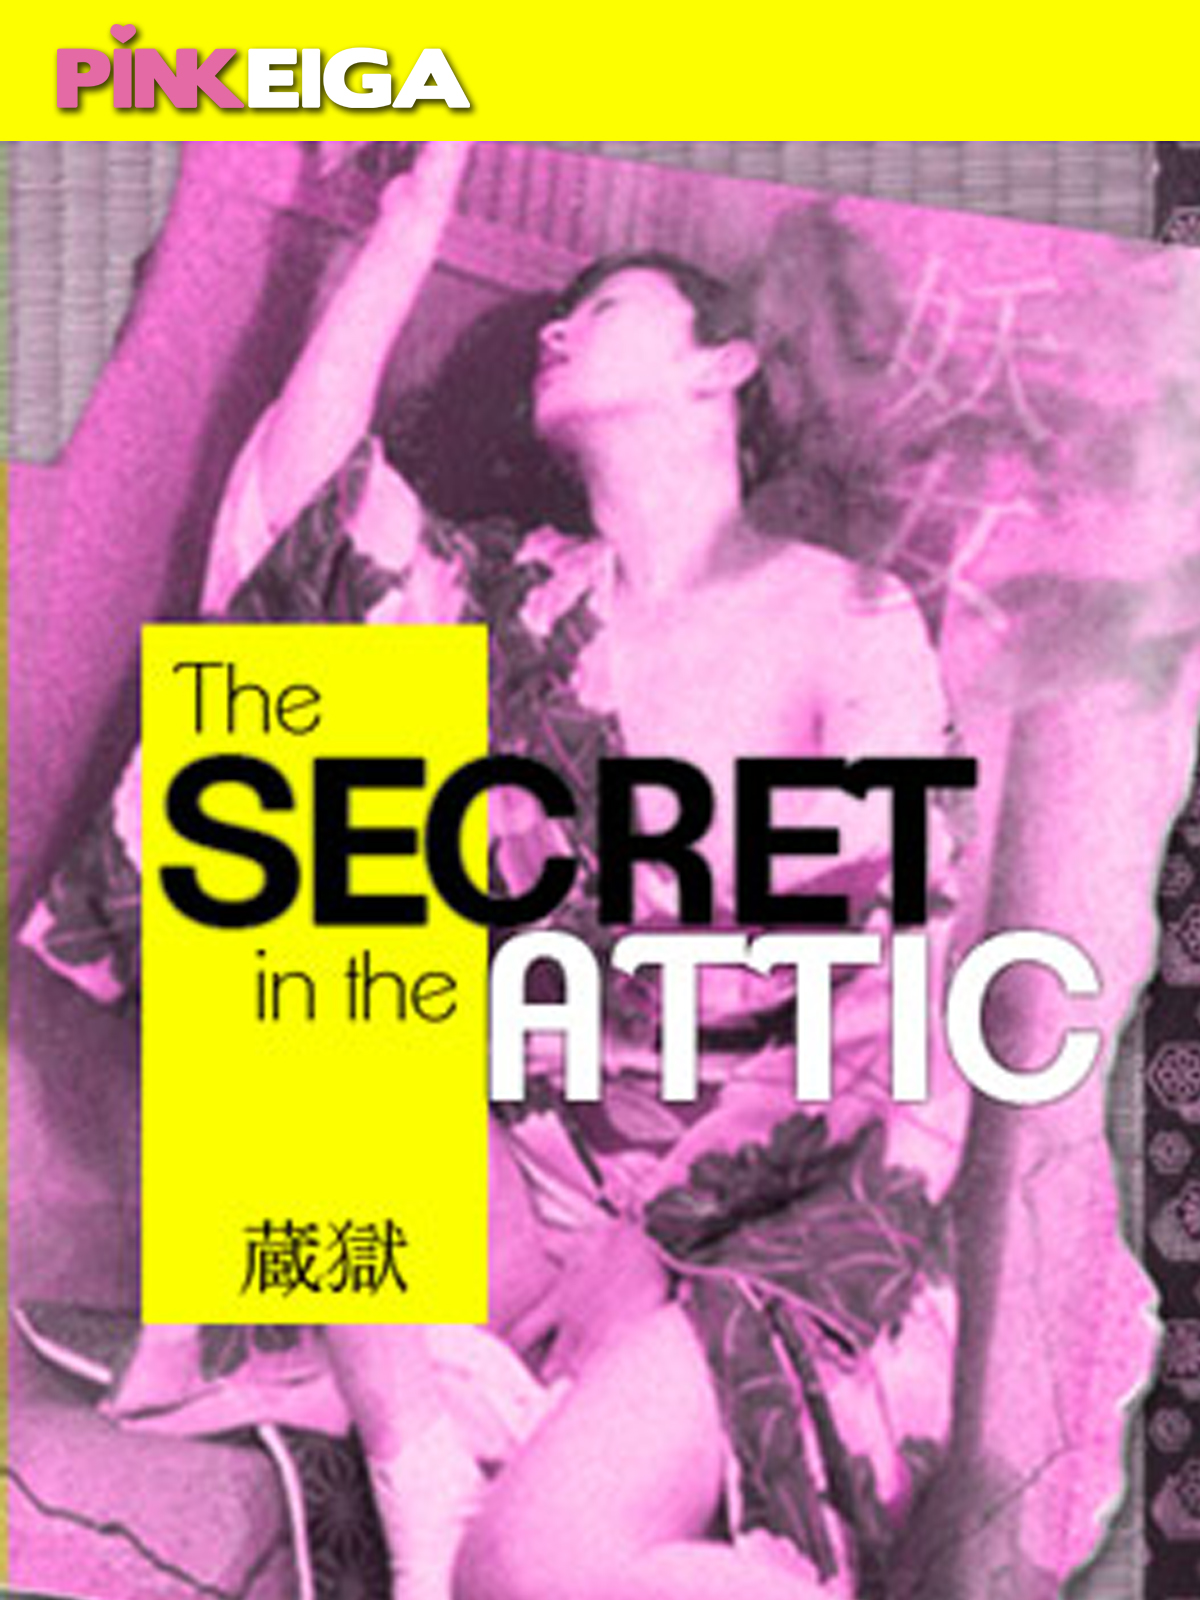 Secret in the Attic  -SD- DOWNLOAD TO OWN